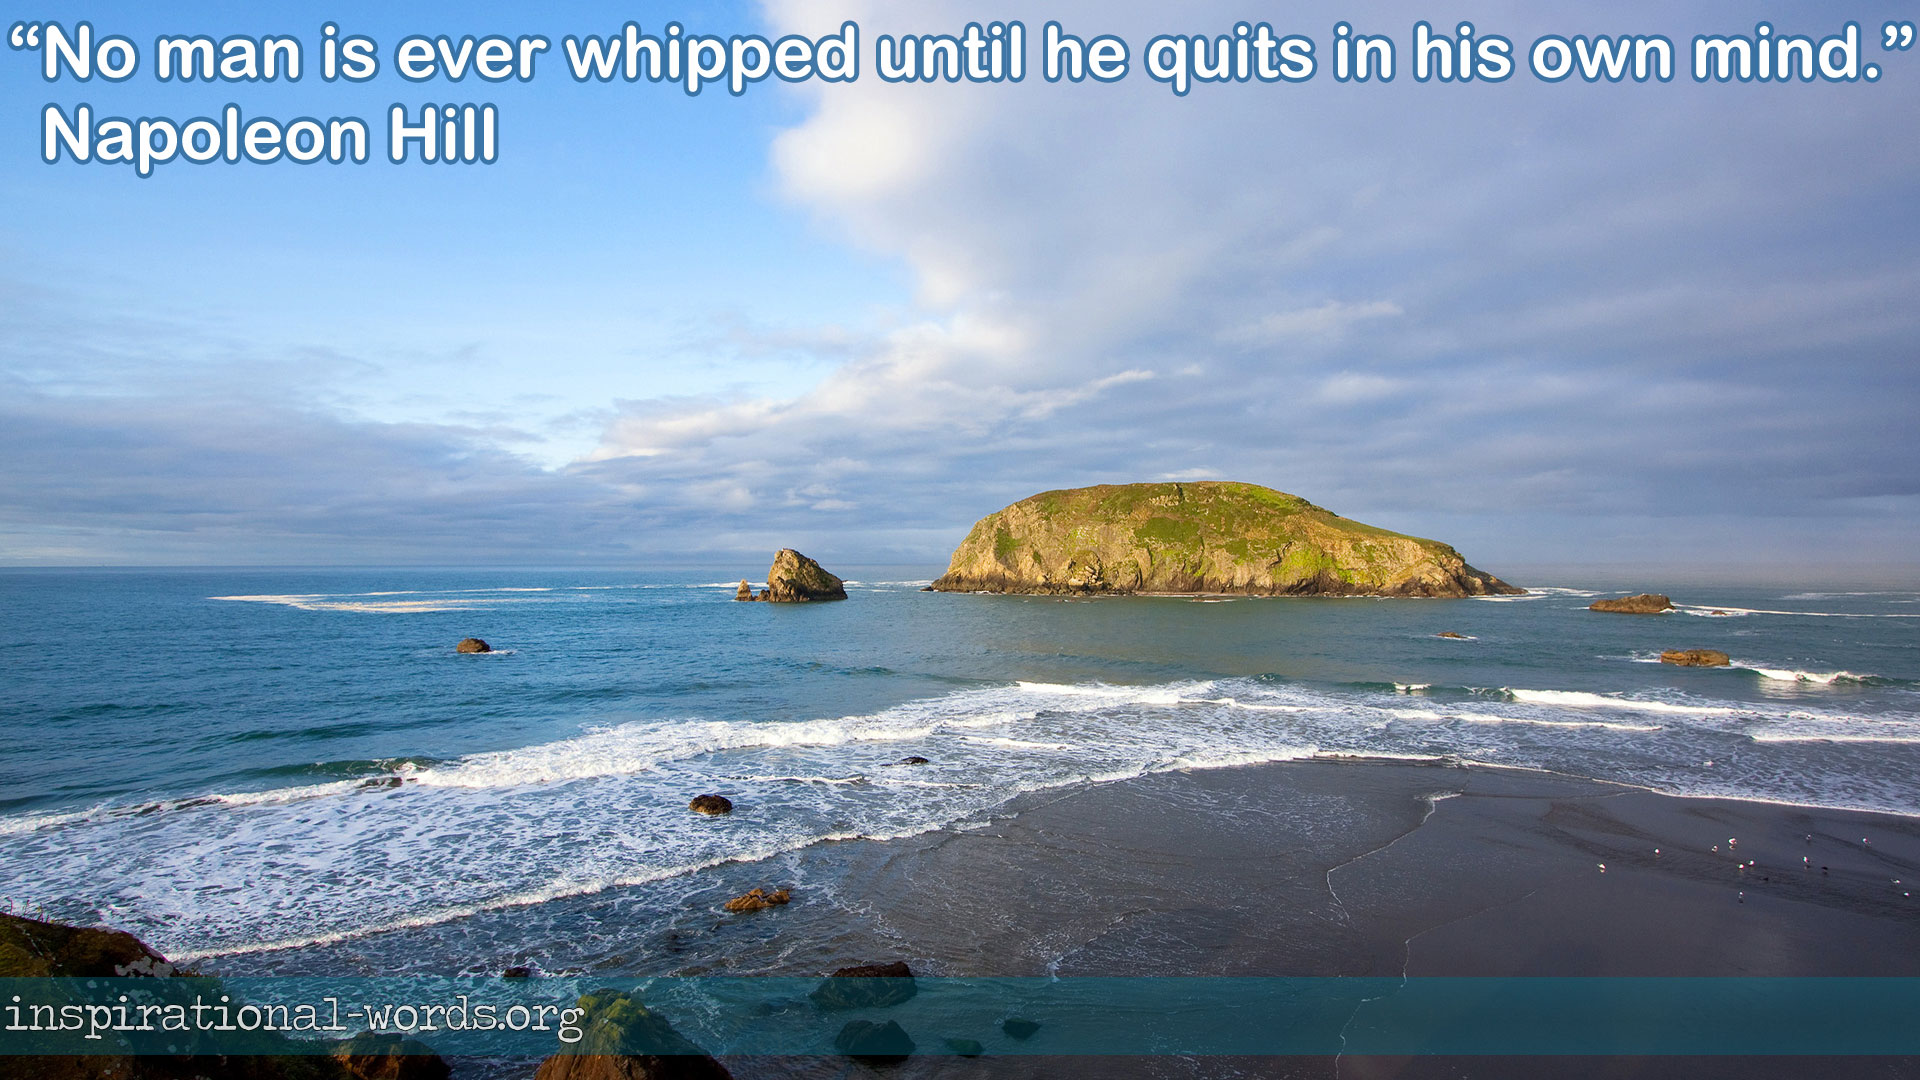 Napoleon Hill inspirational wallpaper